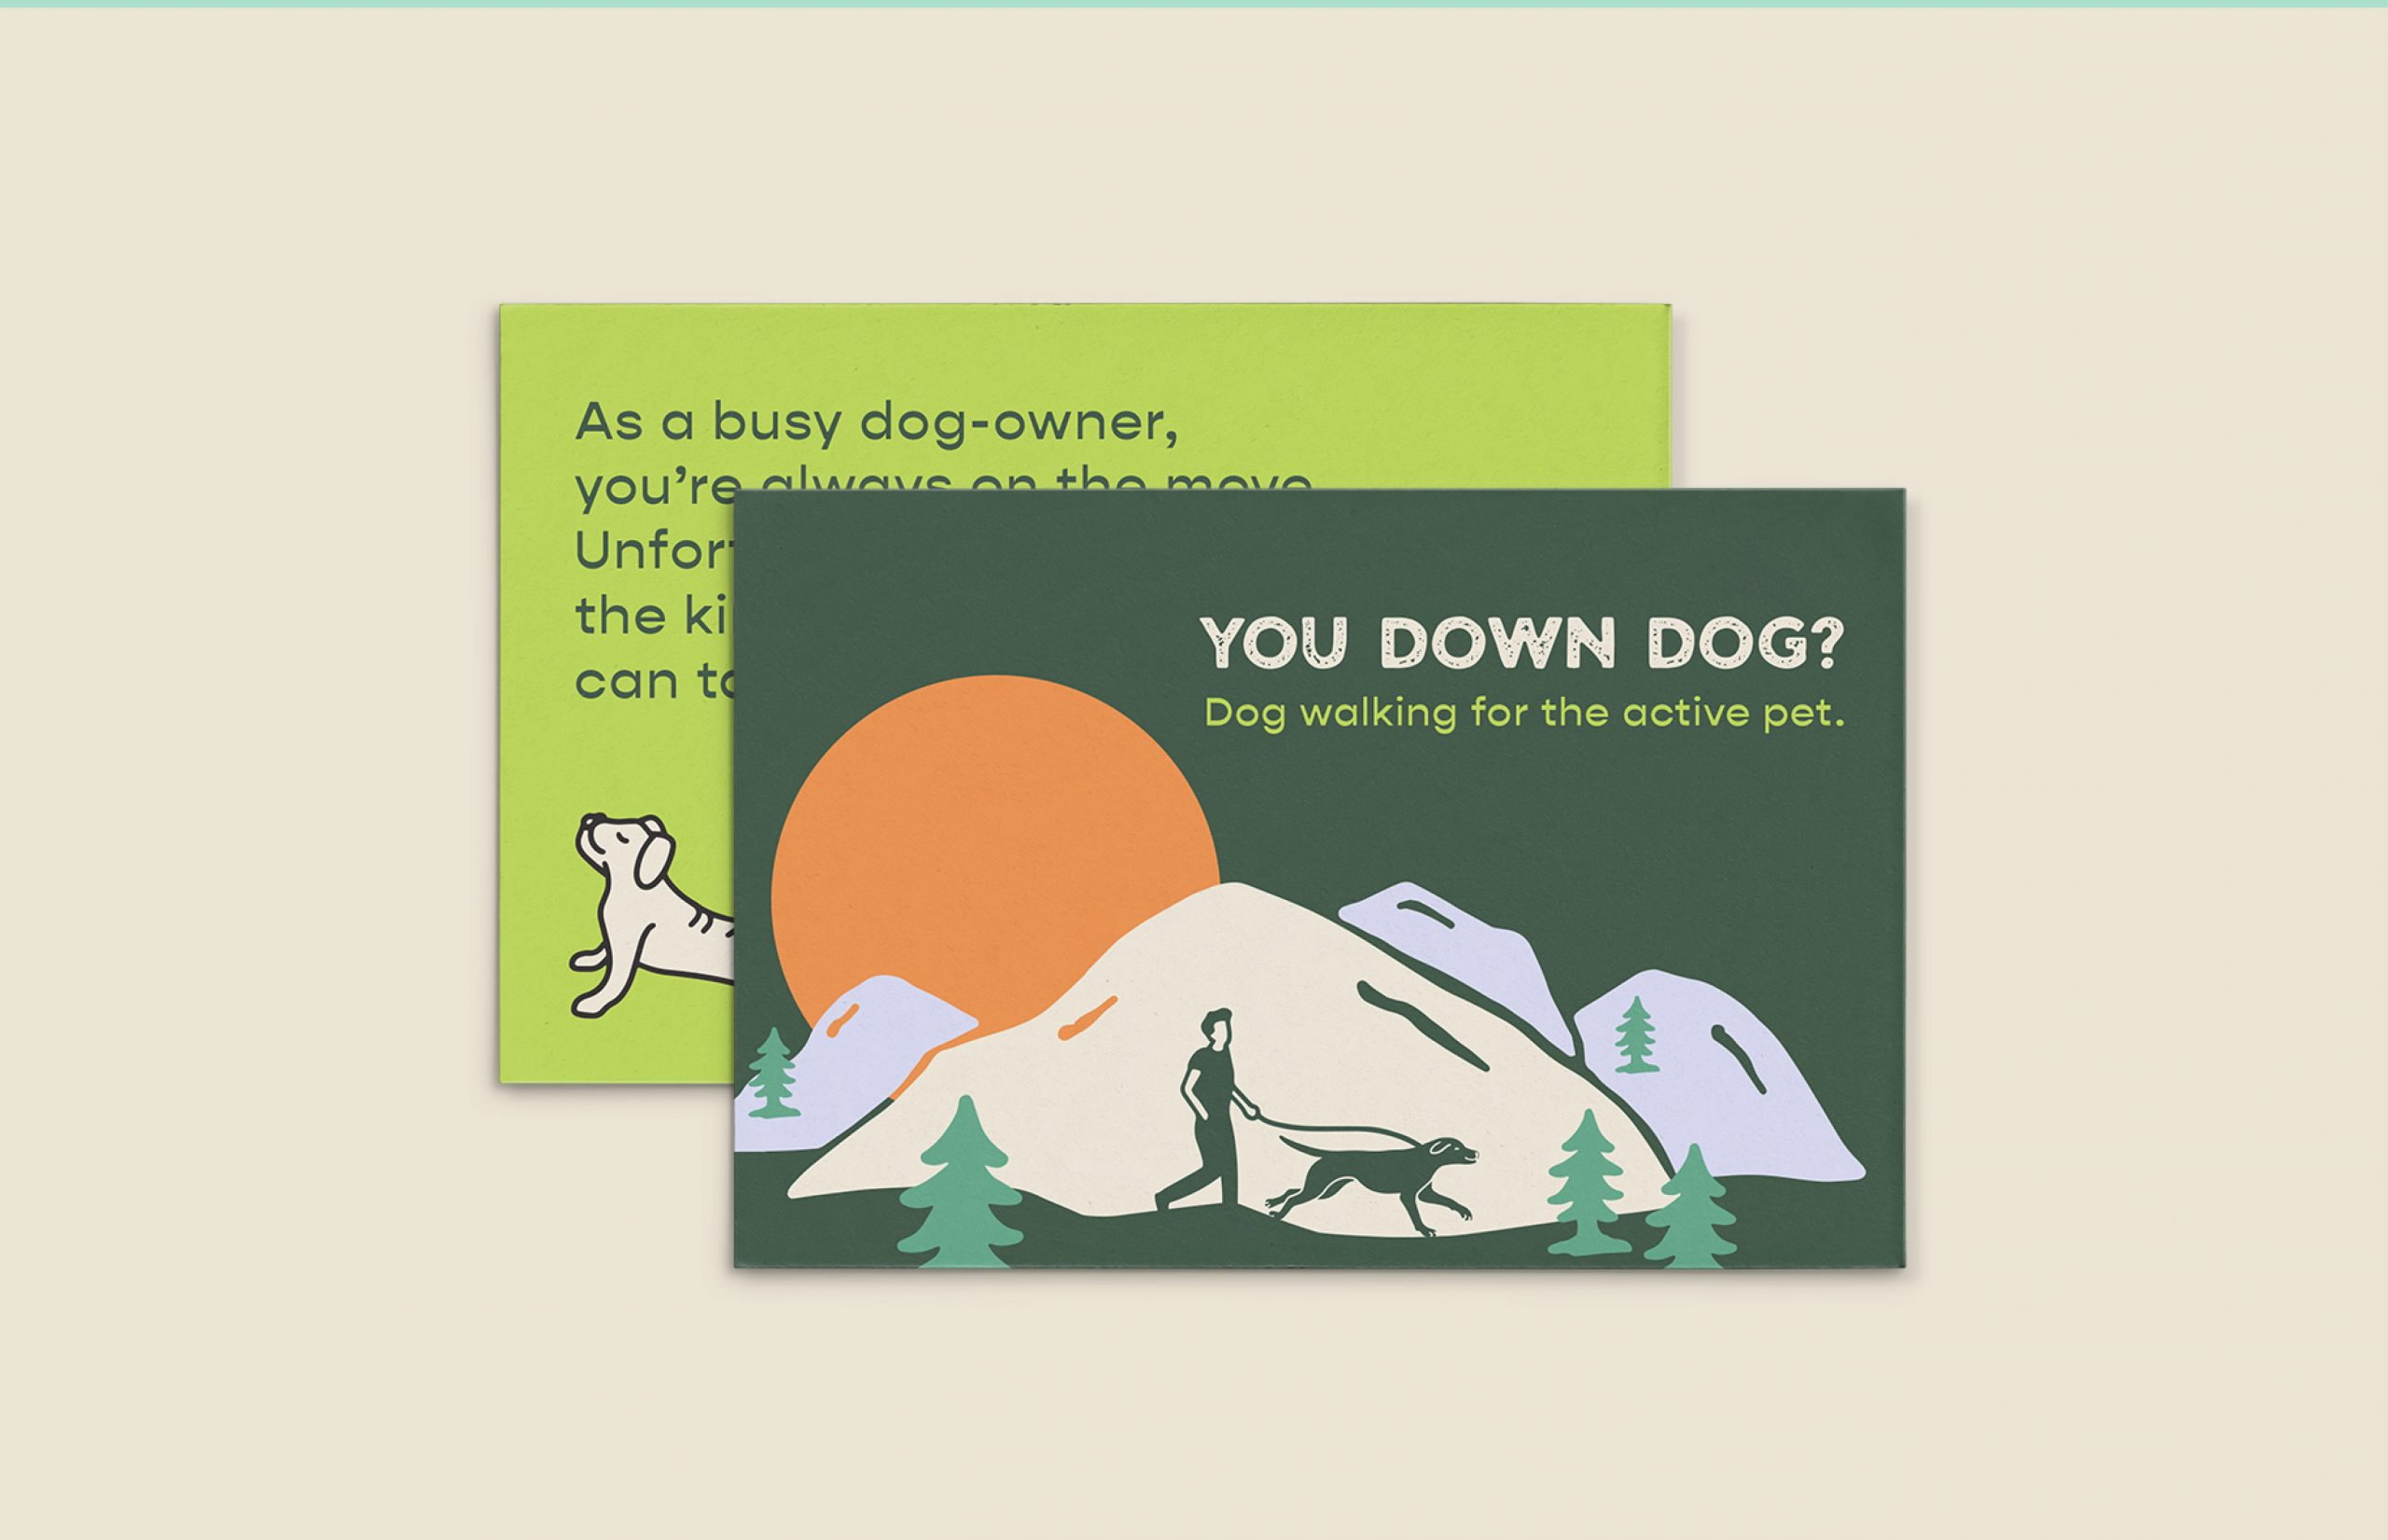 You down dog sales card